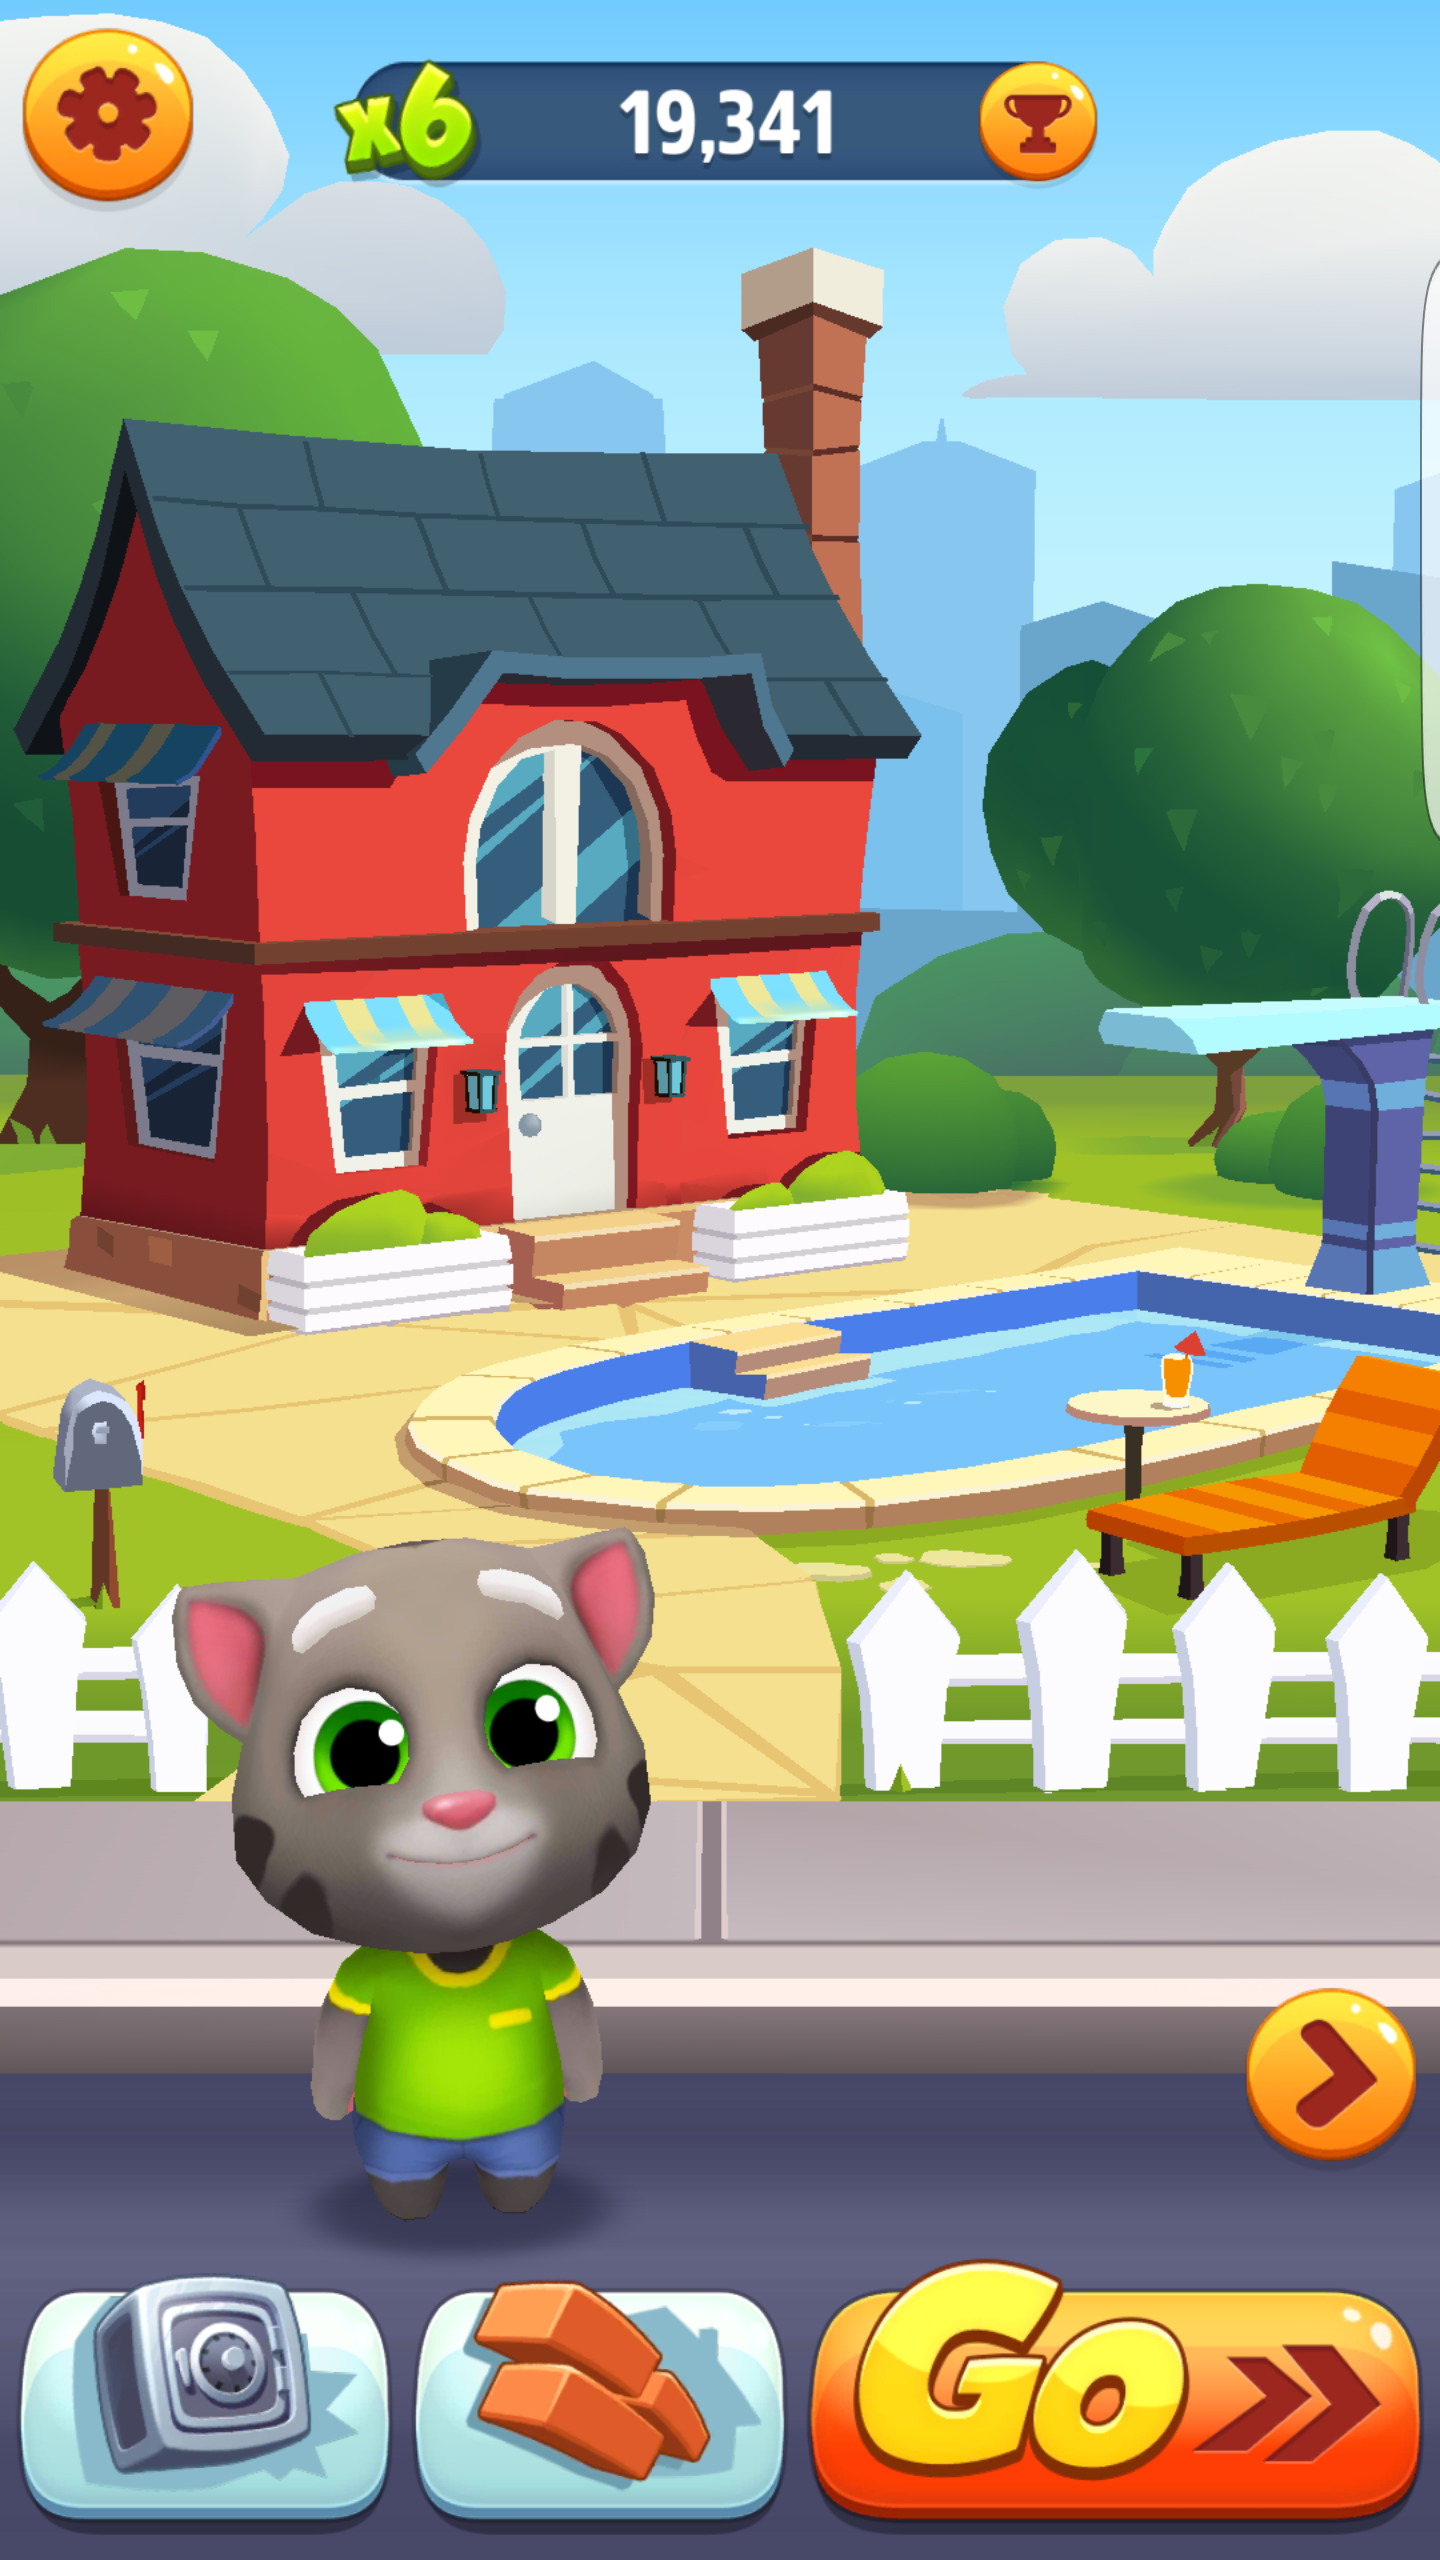 talking tom course l or android 17 20 test photos. Black Bedroom Furniture Sets. Home Design Ideas